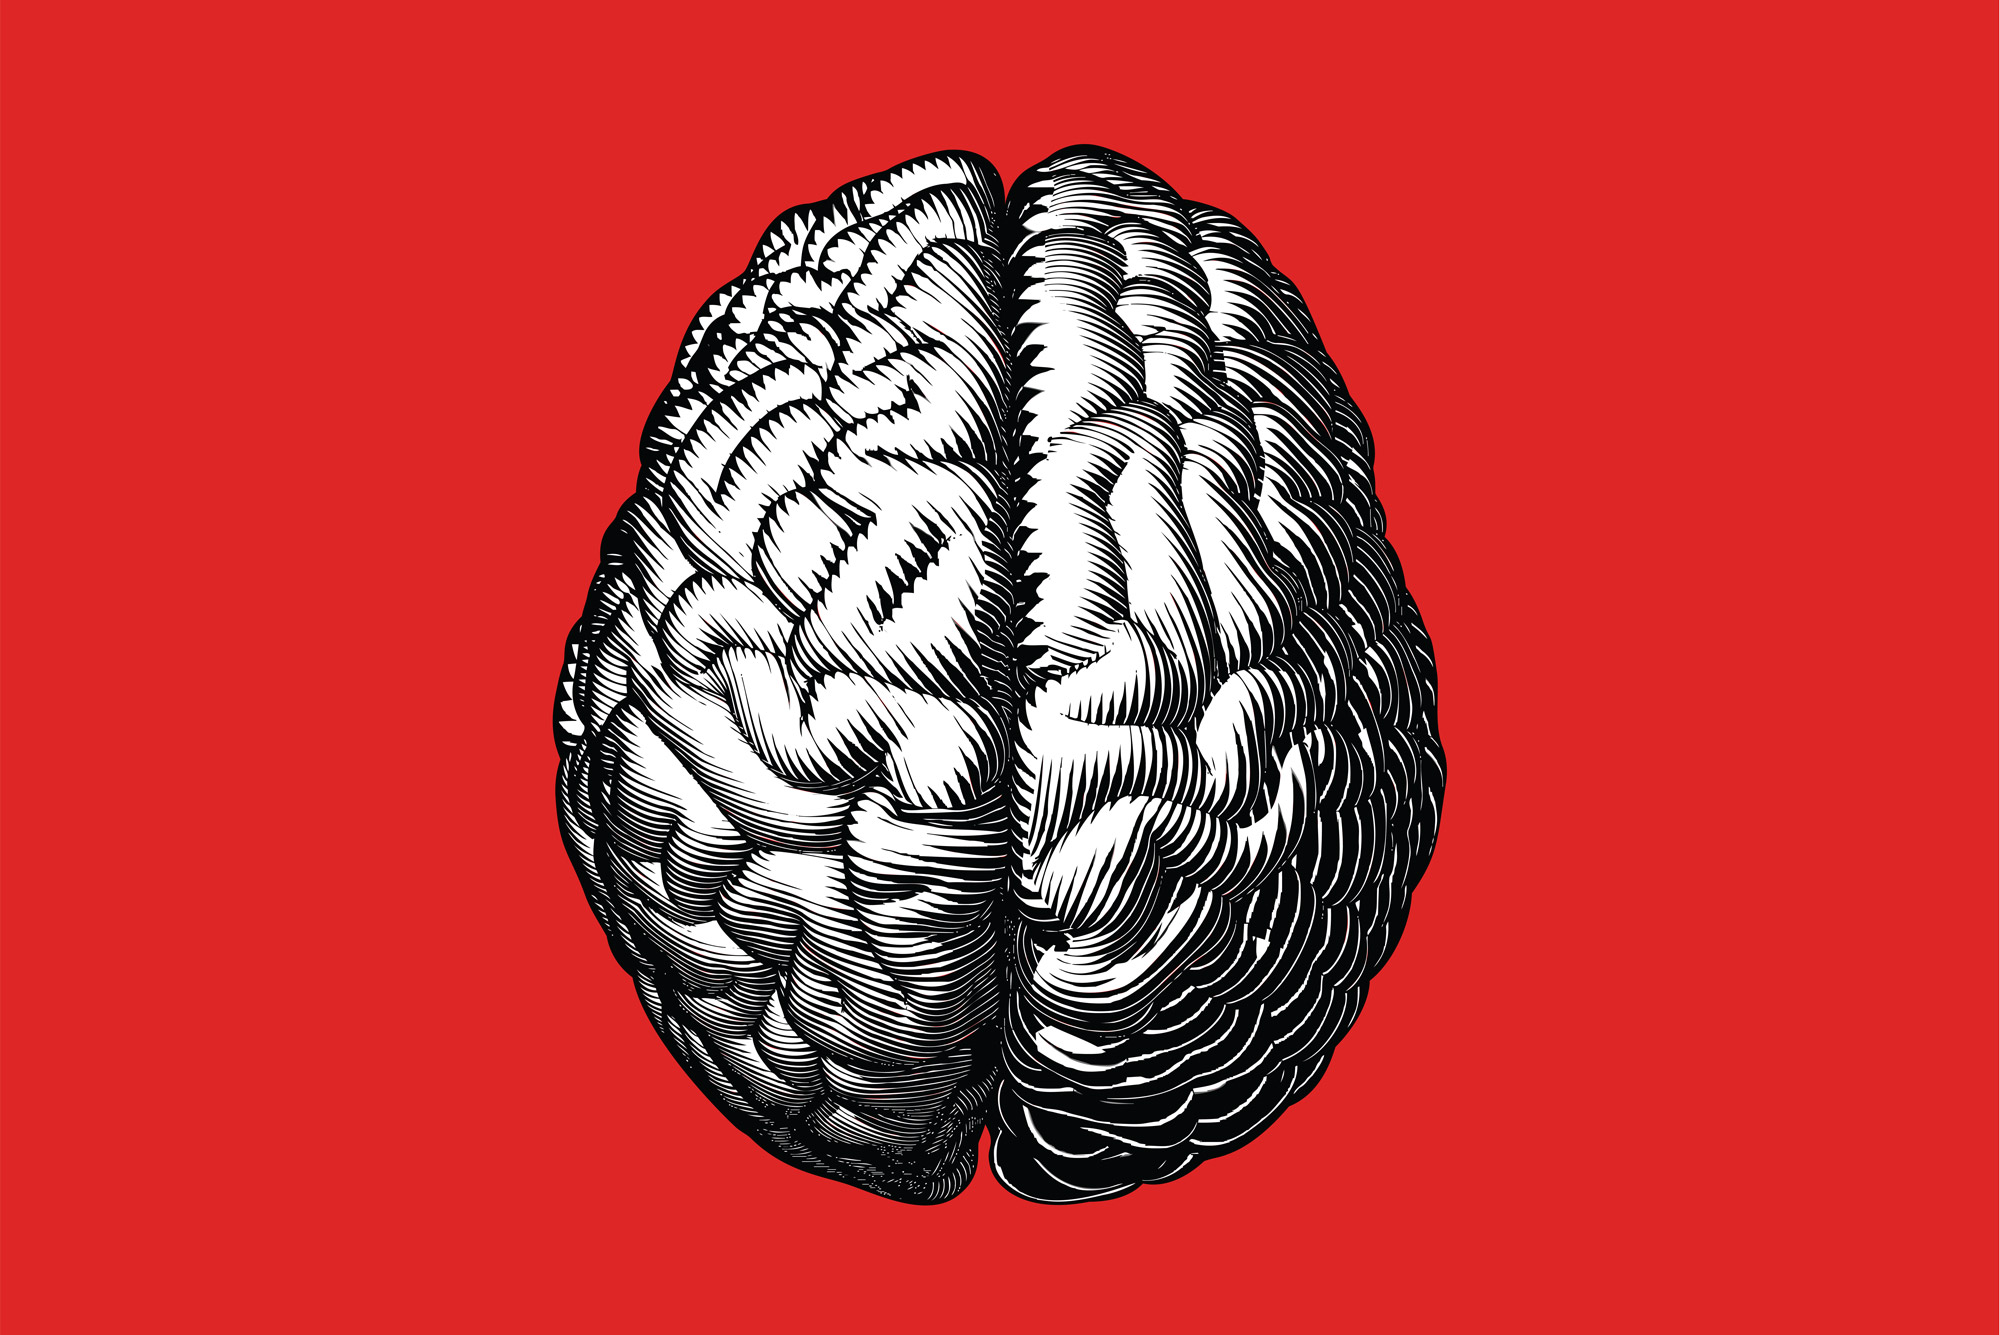 Computer Simulations of the Brain Can Predict Language Recovery in Stroke Survivors